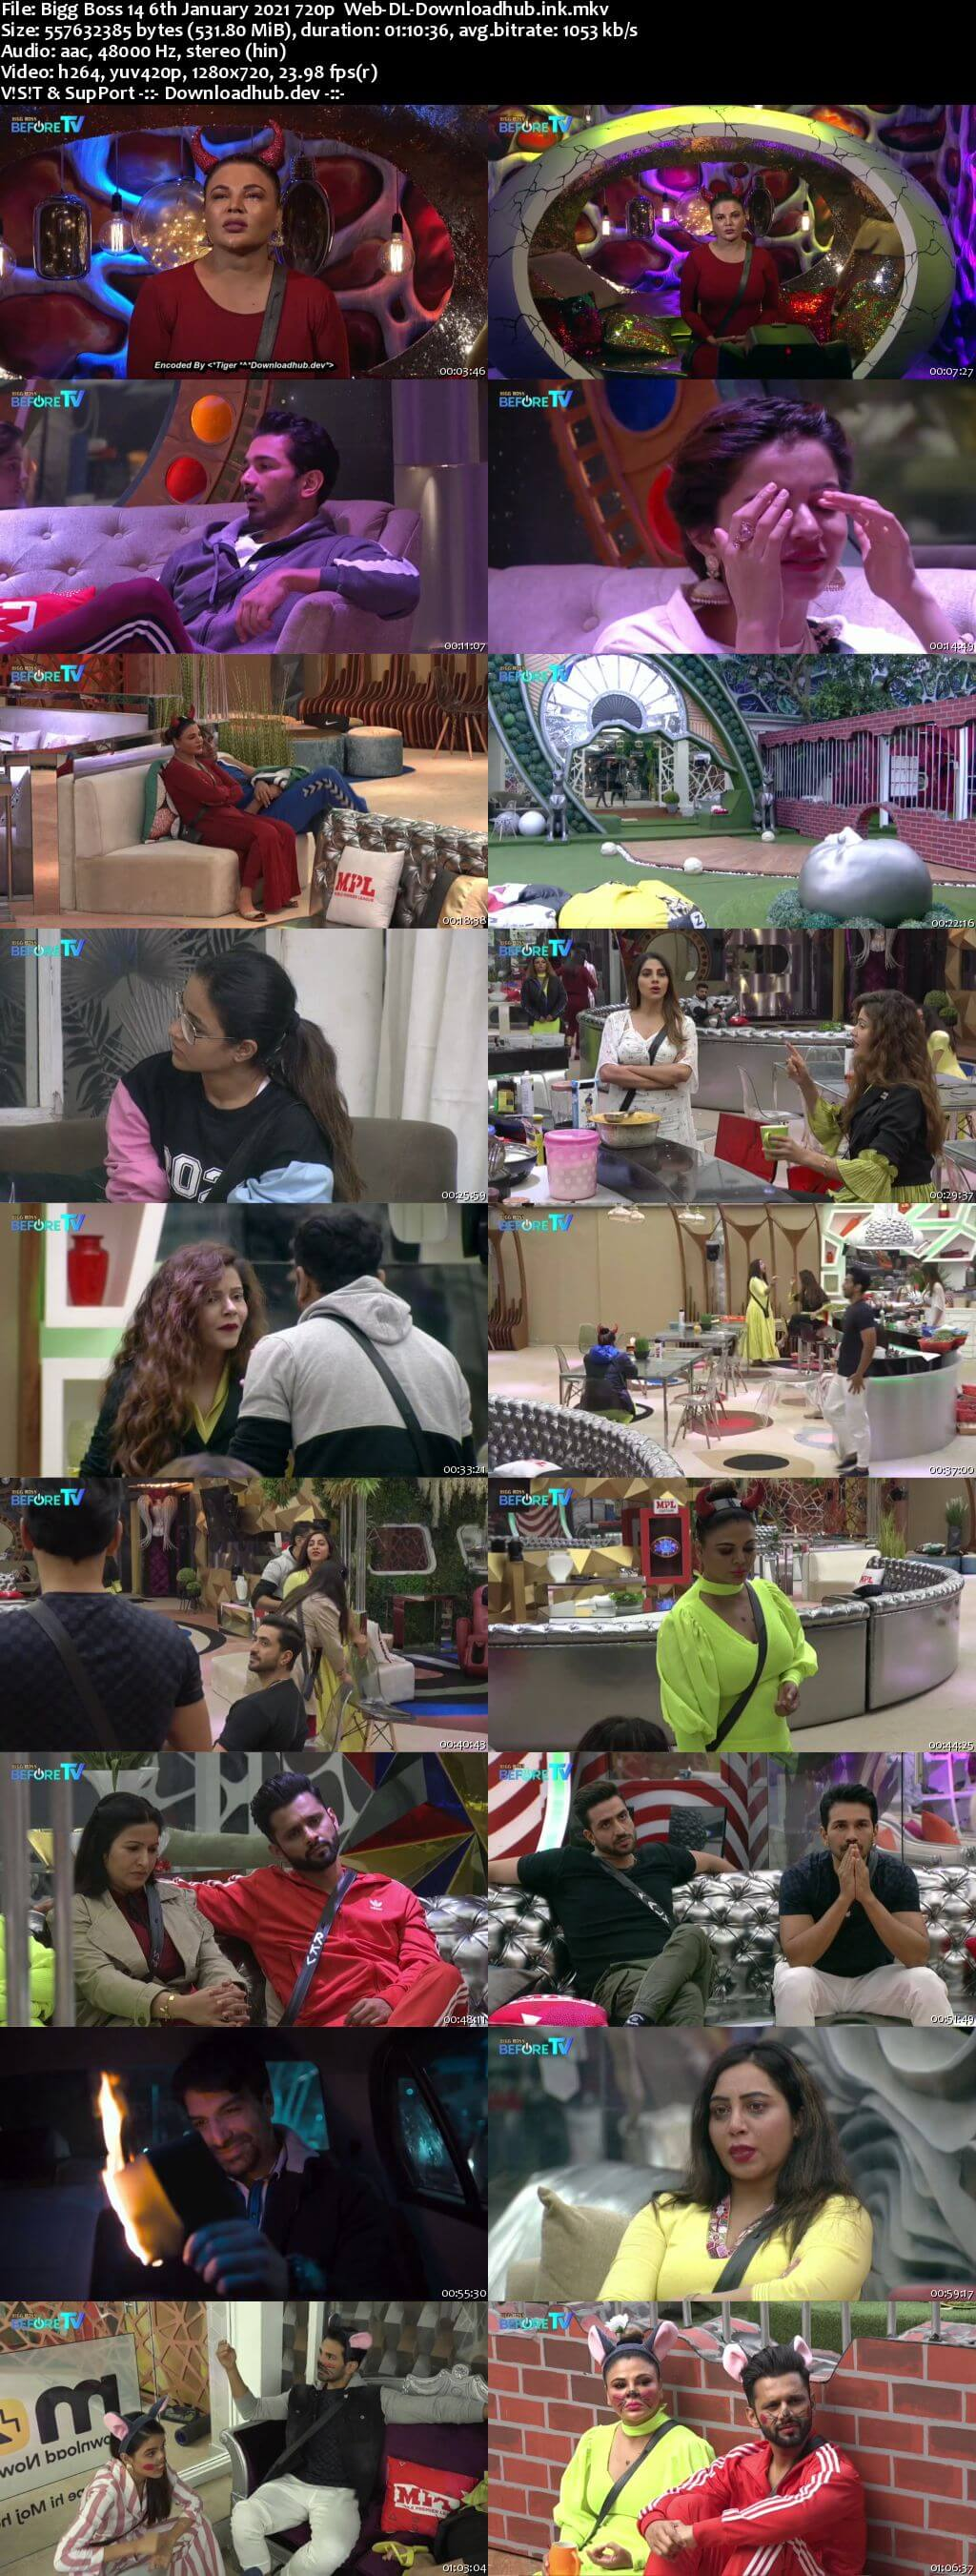 Bigg Boss 14 6th January 2021 Episode 95 720p 480p Web-DL